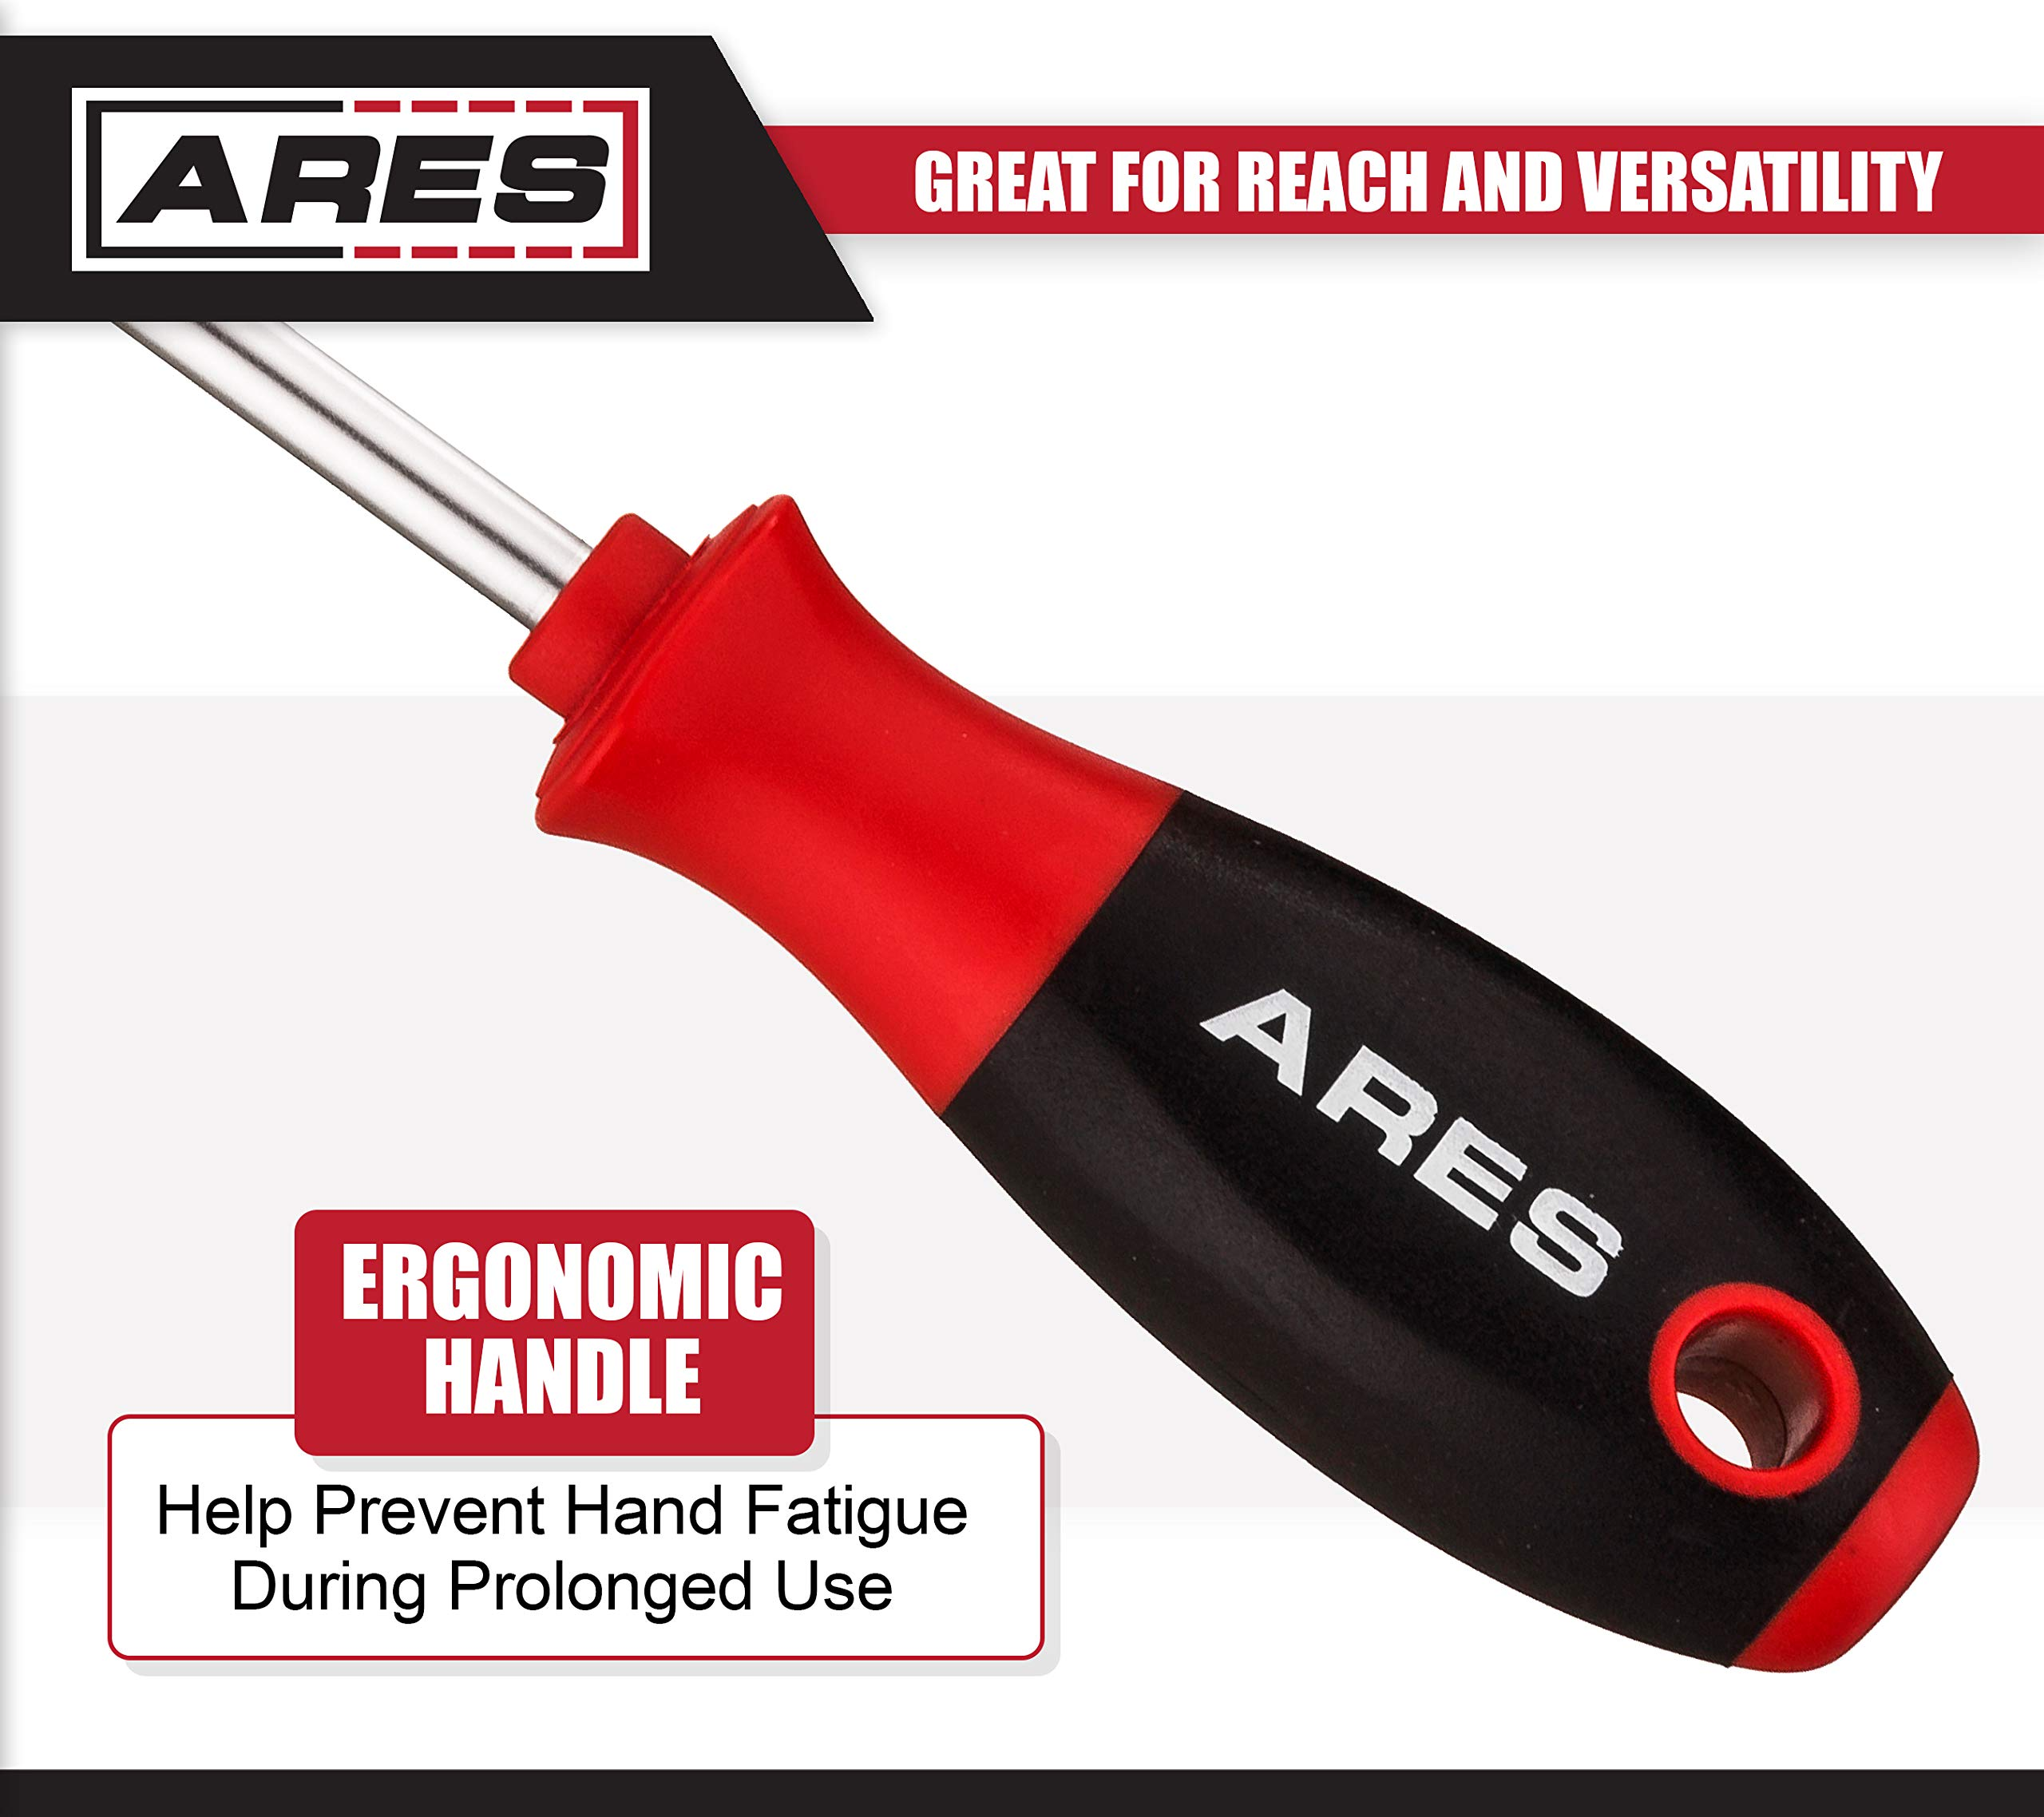 ARES 70246-4-Piece Hook and Pick Set - Includes a Large Straight Pick, 90 Degree Pick, Combination Pick and a Hook Pick - Chrome Vanadium Steel Shafts - Easily Remove Hoses, Gaskets and More by ARES (Image #4)